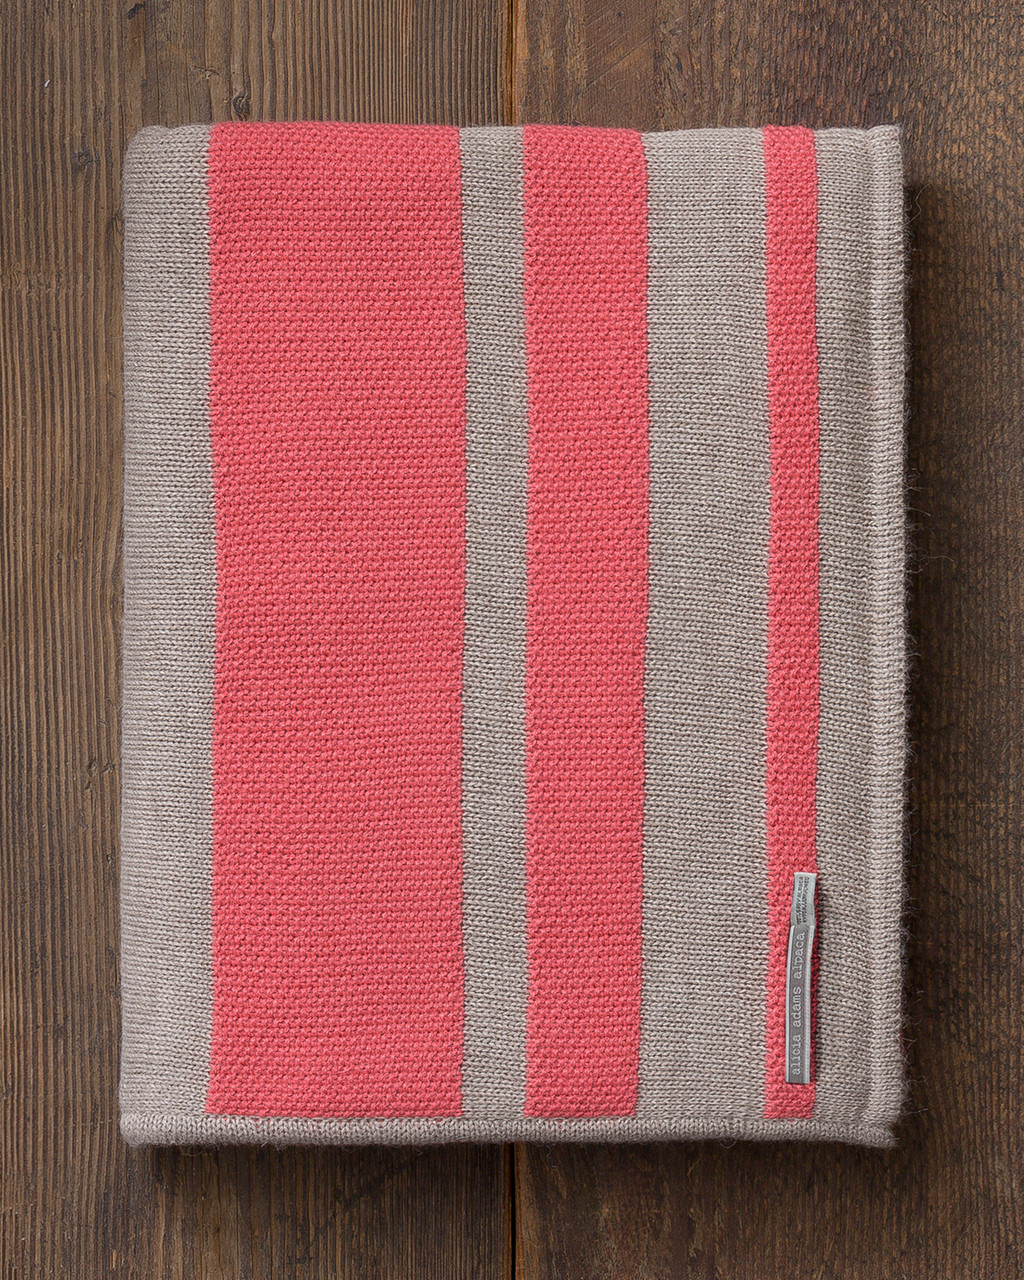 Alicia Adams Alpaca Malibu Throw, lightweight alpaca throw blanket, alpaca throw, alpaca vs cashmere, coral and light taupe striped alpaca throw